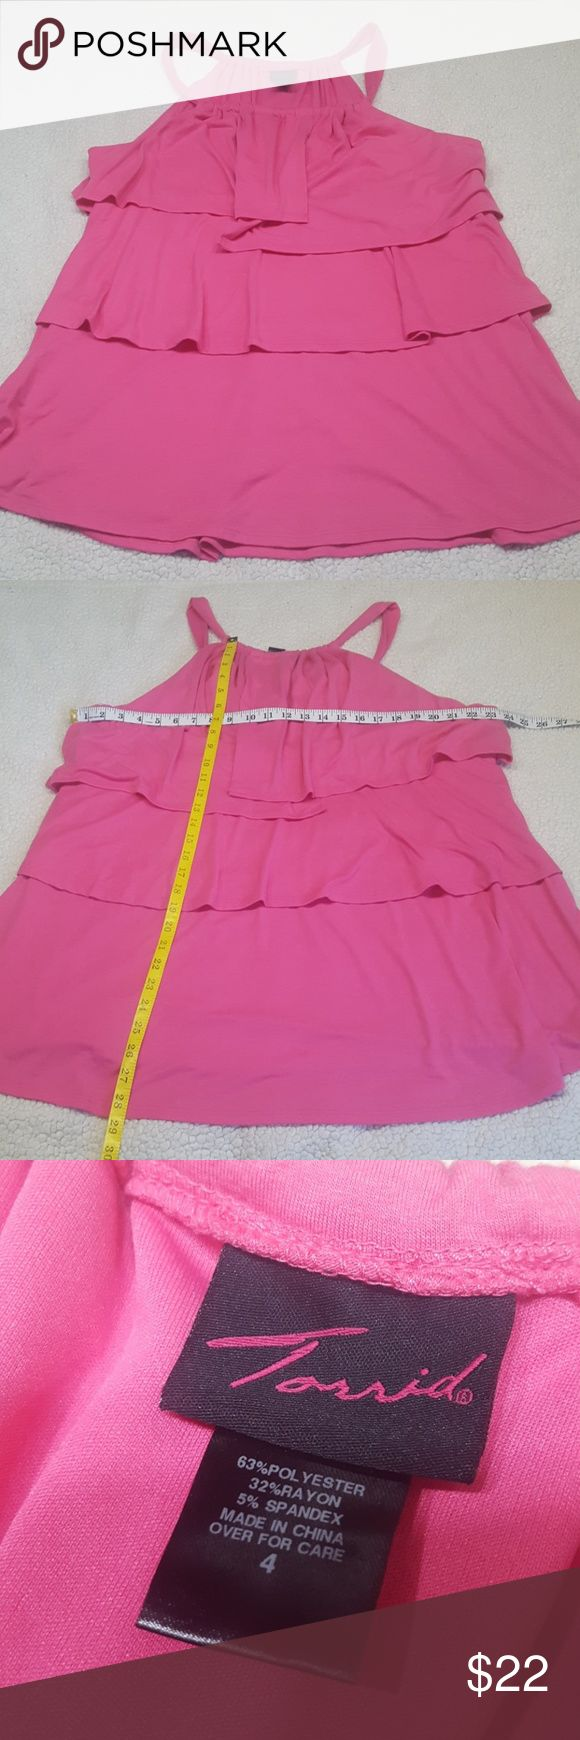 TORRID pink sundress size 4 TORRID pink sundress size 4 In great condition  Please be sure to look at measurements before purchasing(: torrid Dresses